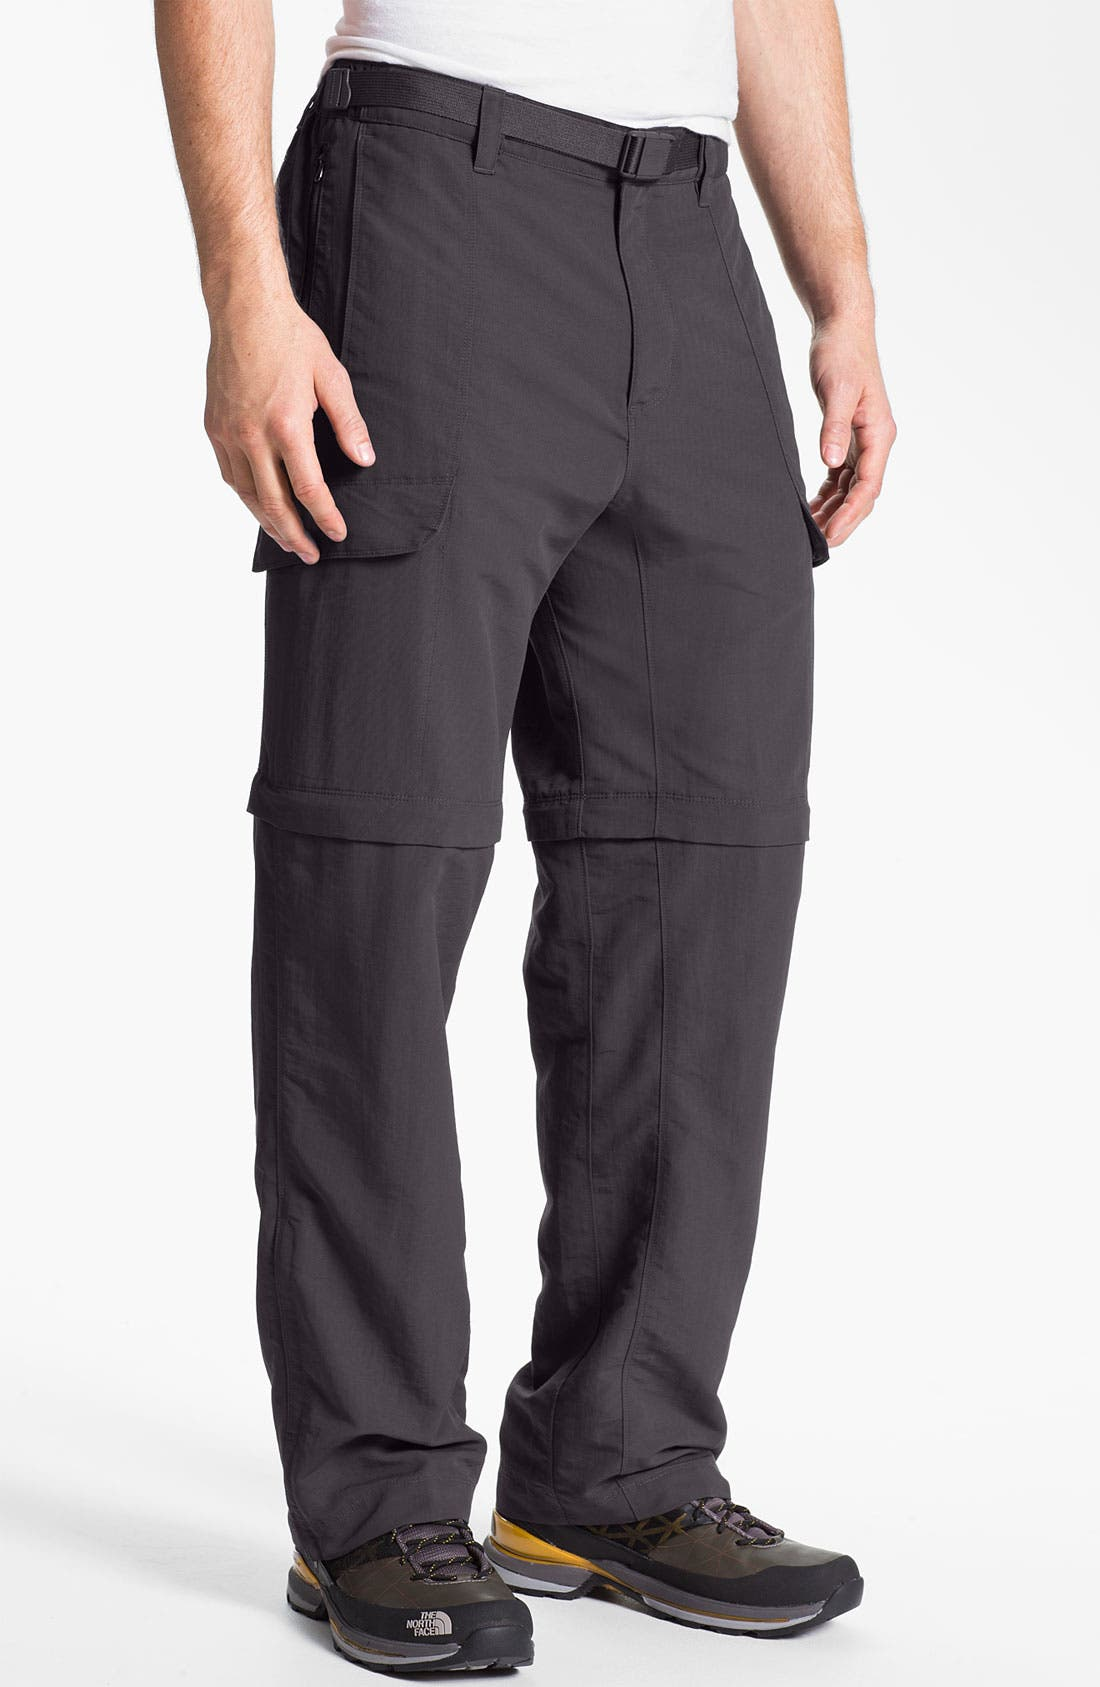 Alternate Image 1 Selected - The North Face 'Paramount Peak' Convertible Pants